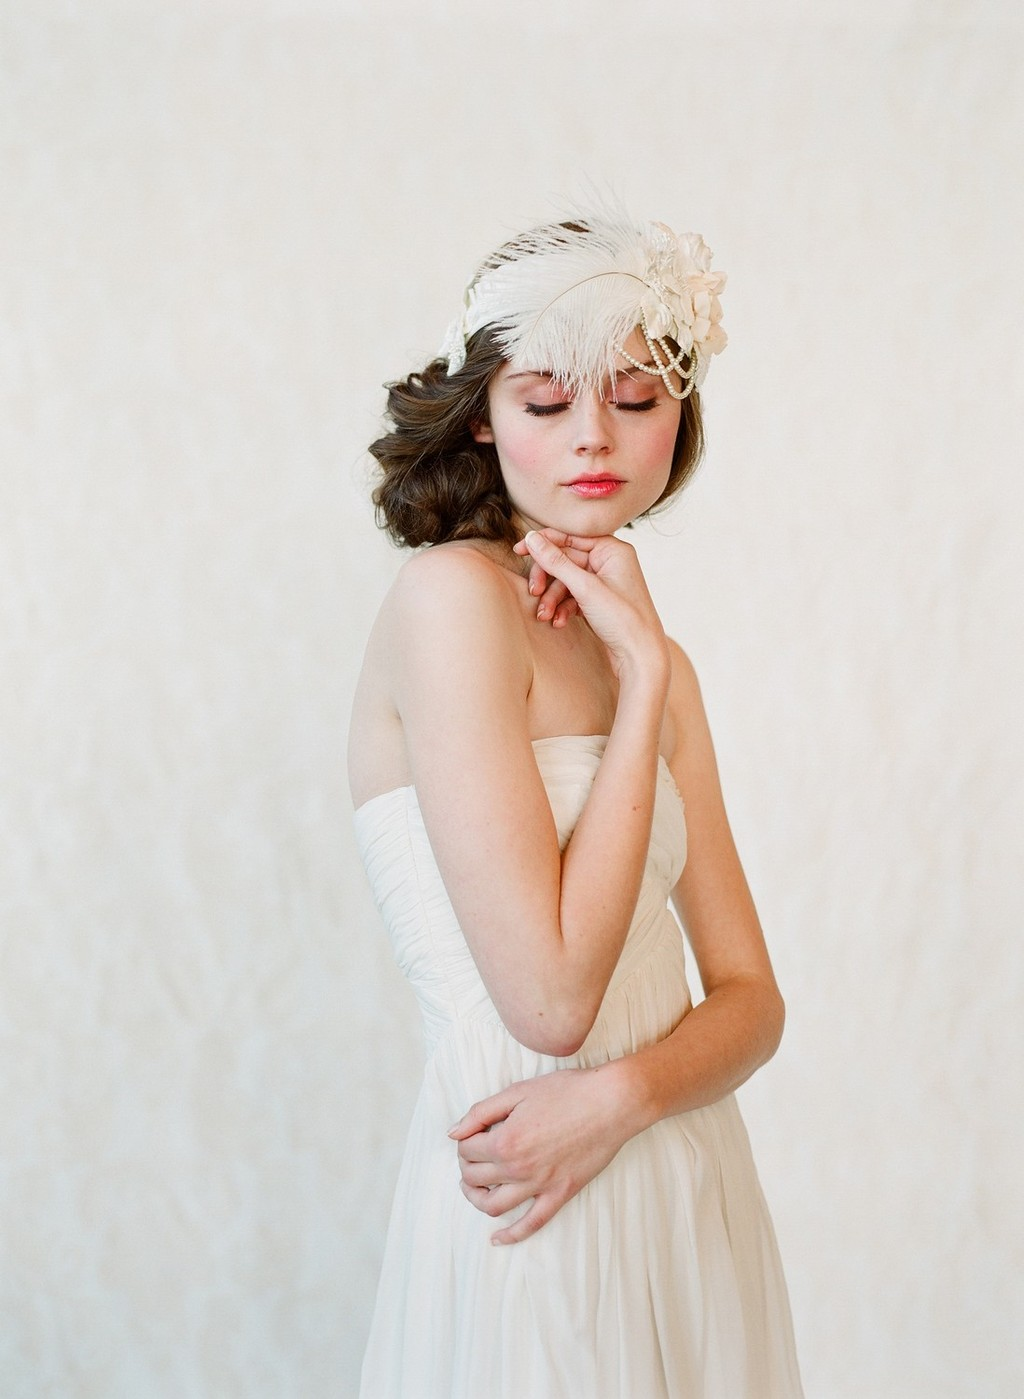 Flapper inspired wedding headpiece with feathers and pearls